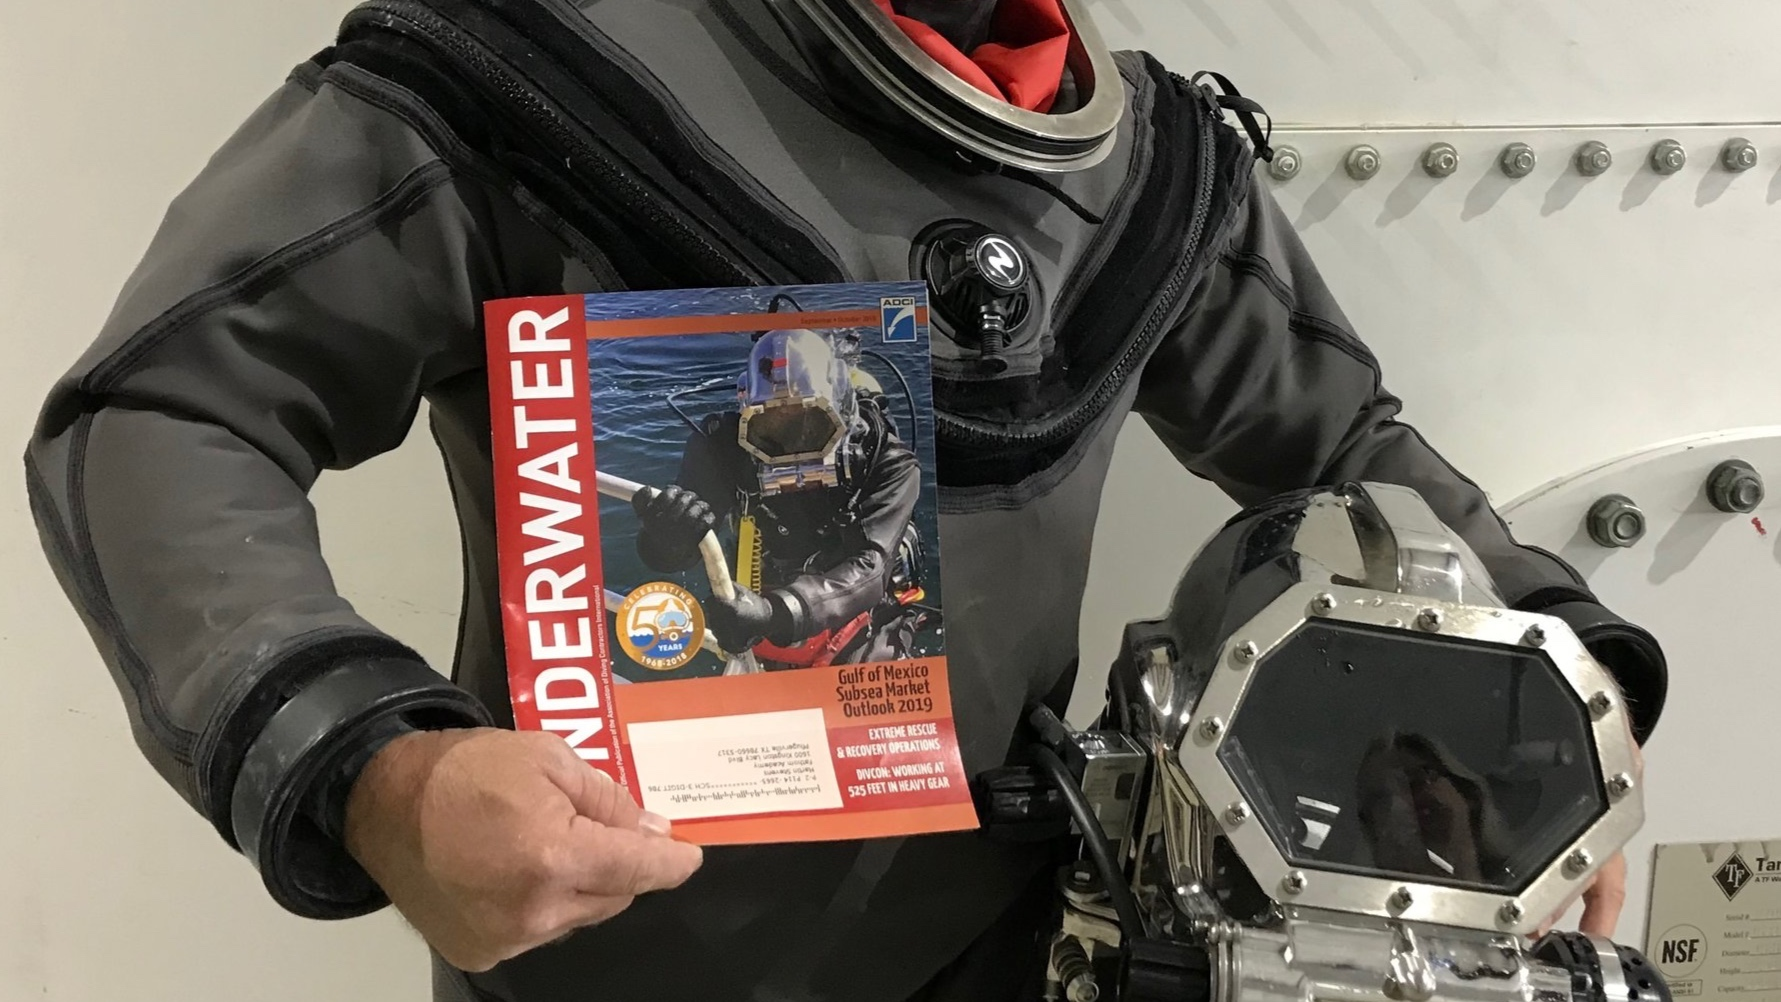 - Our underwater space training dive-suit made the cover of Underwater Magazine.